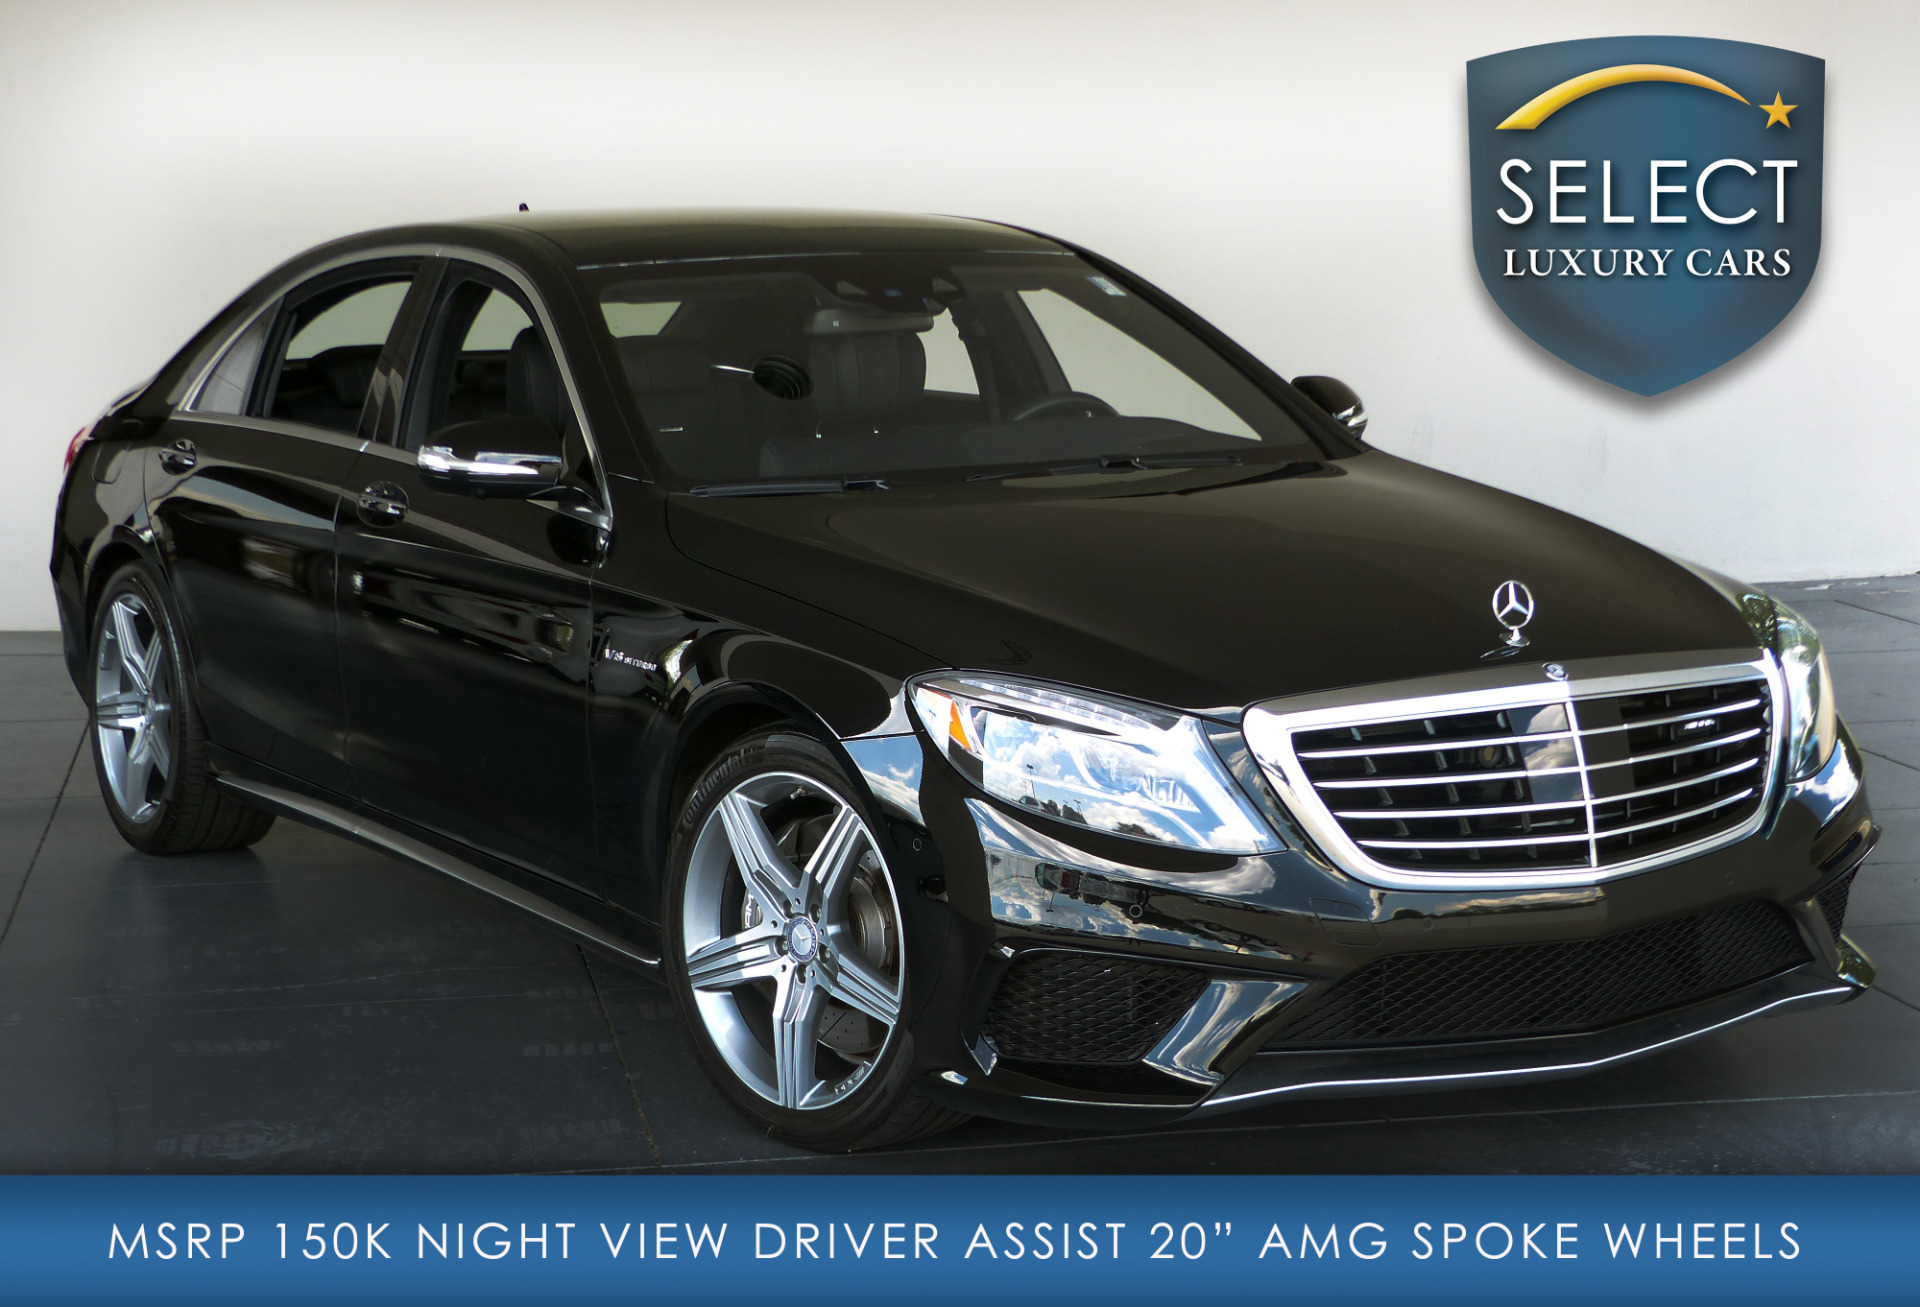 Used 2015 mercedes benz s class s63 amg marietta ga for Used s class mercedes benz